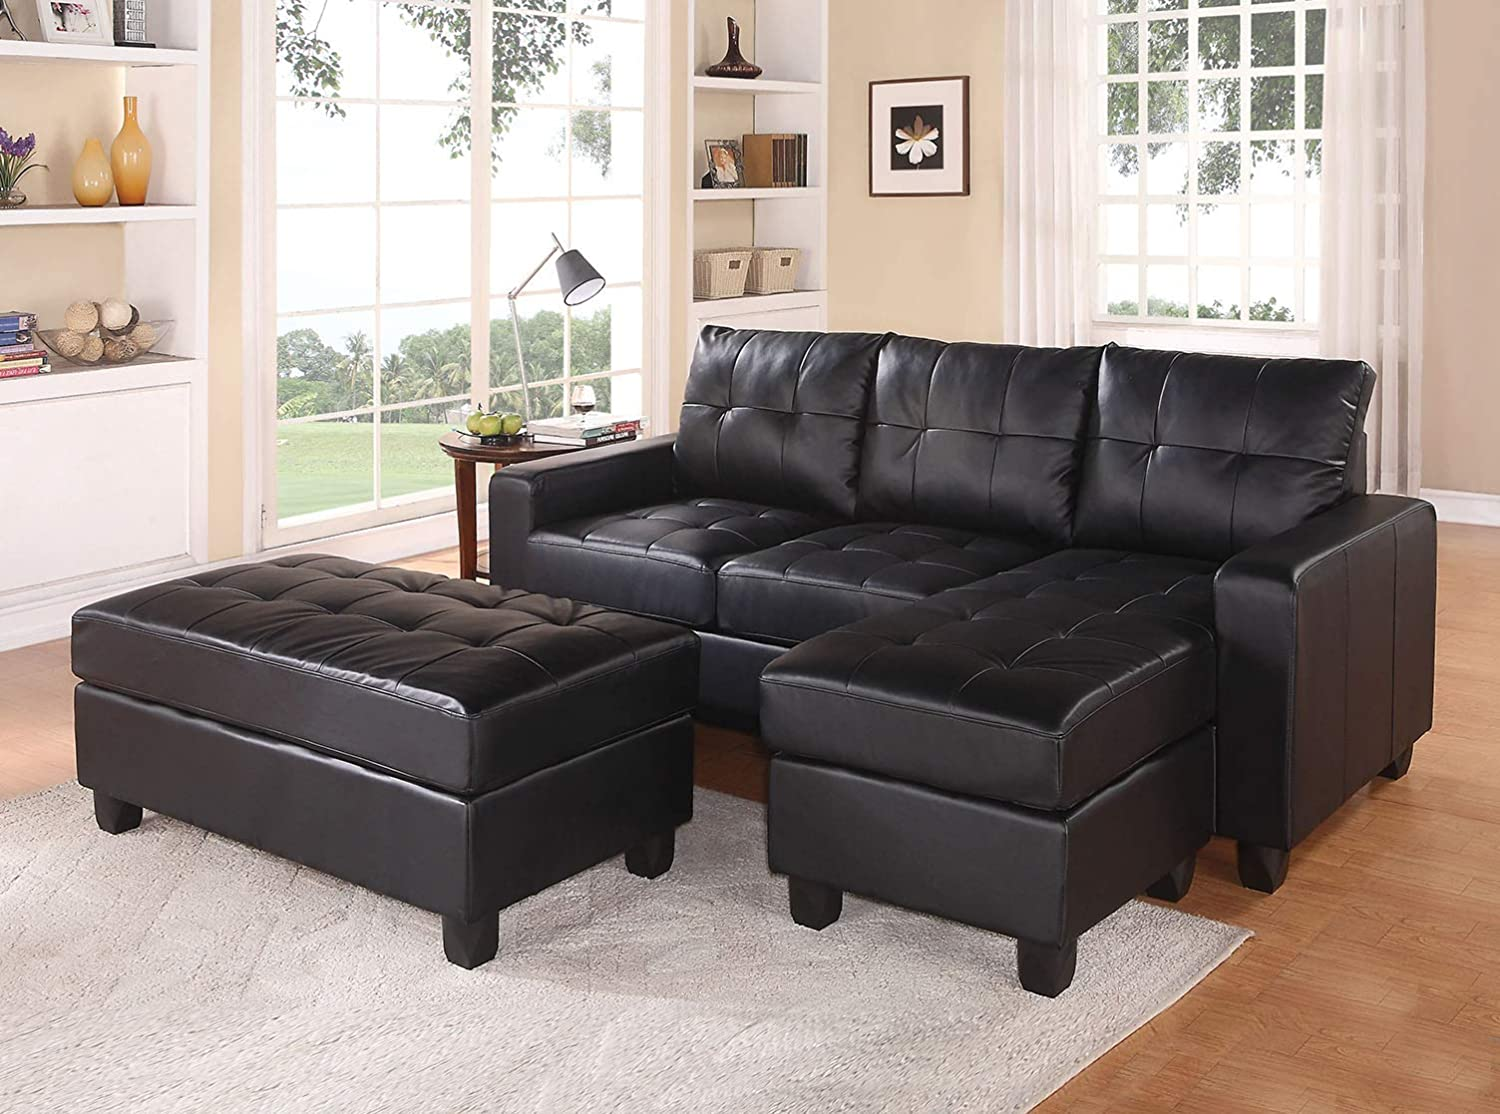 Prime Acme Lyssa Black Bonded Leather Sectional Sofa With Reversible Chaise And Ottoman Machost Co Dining Chair Design Ideas Machostcouk